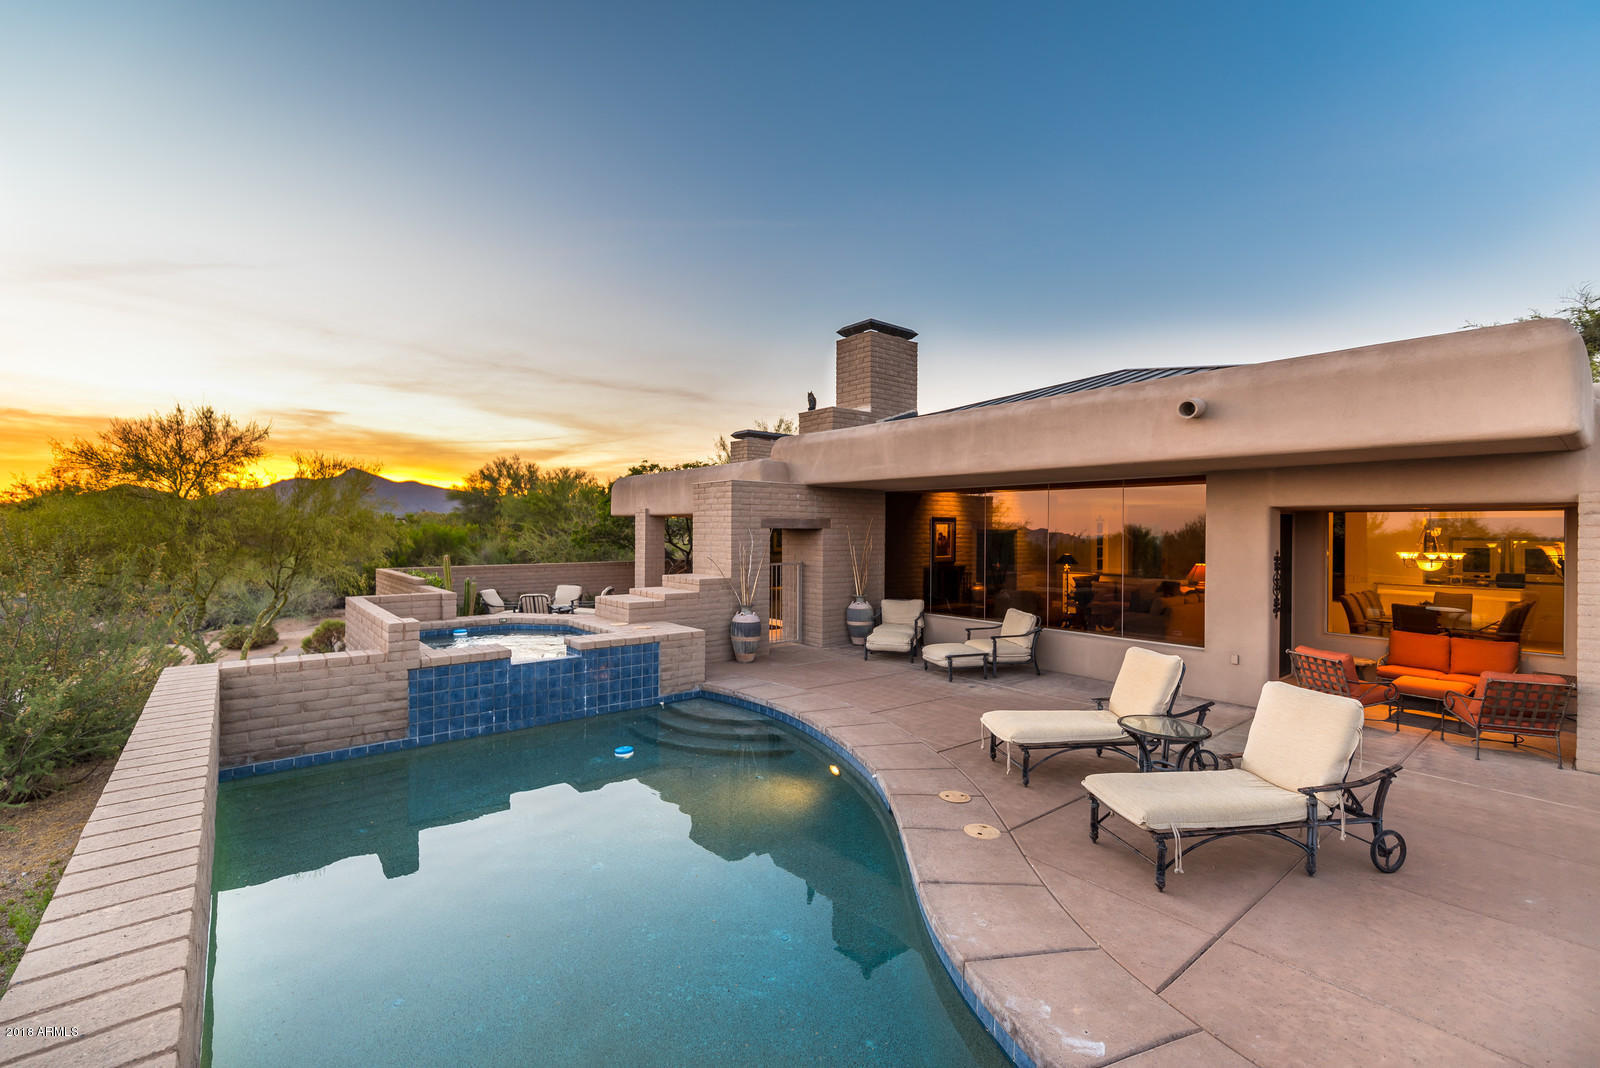 5 Bed/6 Bath Home In Scottsdale For $1,295,000